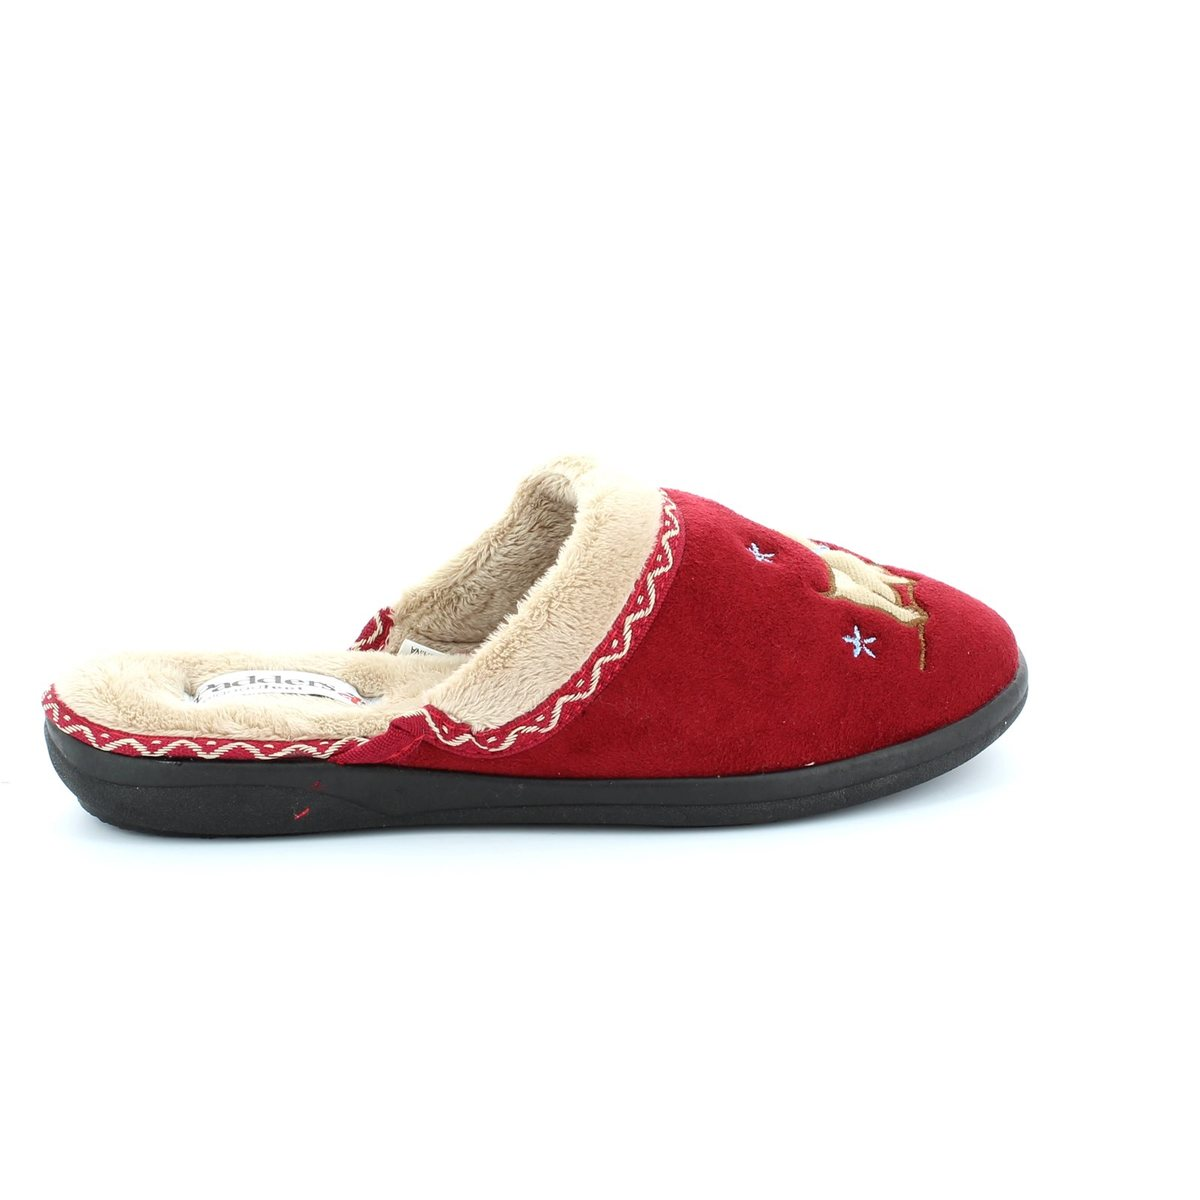 5ef83dfd6b0bb Padders Slippers - Red - 479/42 SCOTTY 2E FIT